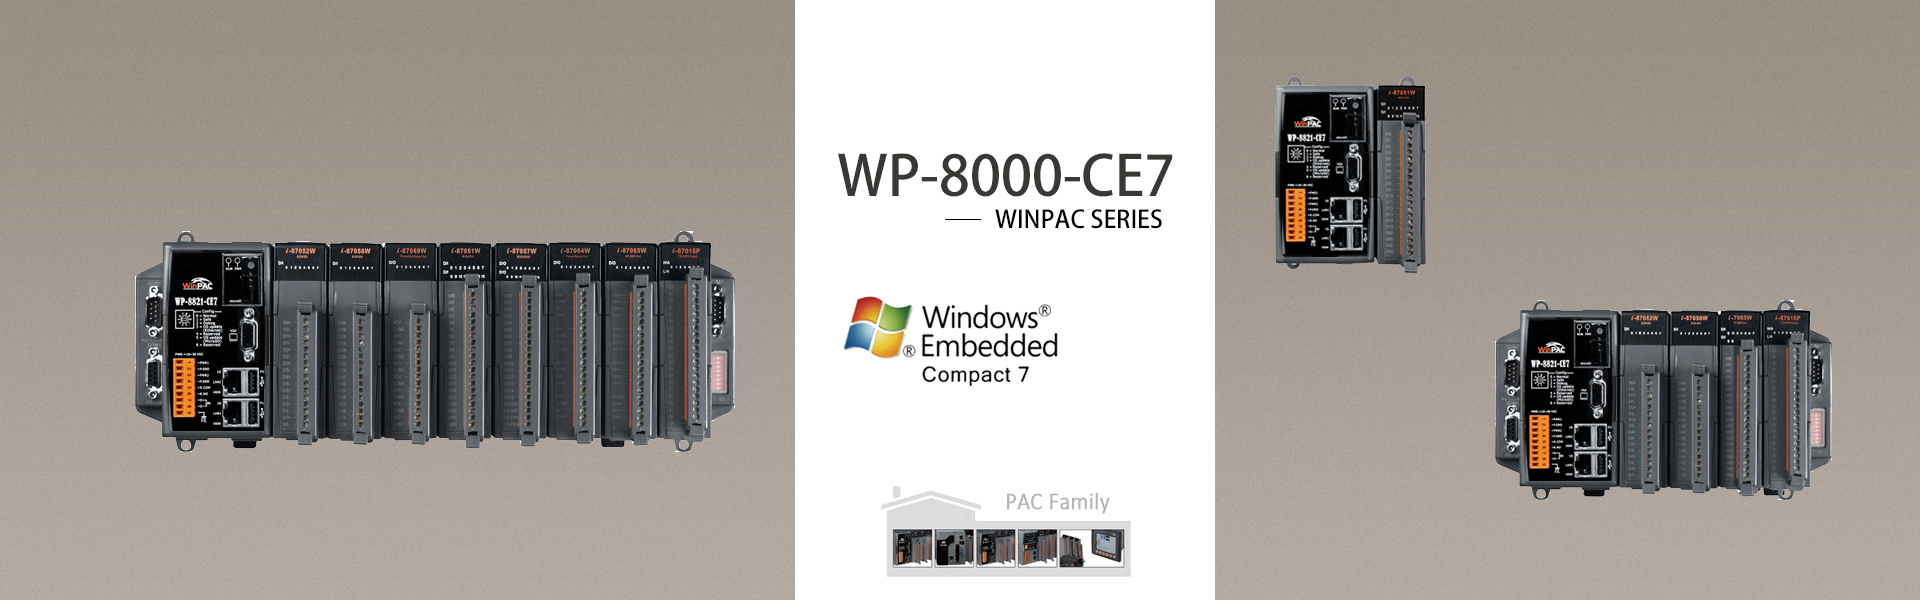 Home Product Solutions Pac Winpac 8000 As Shown For The Electronic Watchdog Circuit It Has Ability Of Is Second Generation Icp Das Equips A Pxa270 Cpu 520mhz Running Windows Cenet 50 Operating System Variant Connectivities